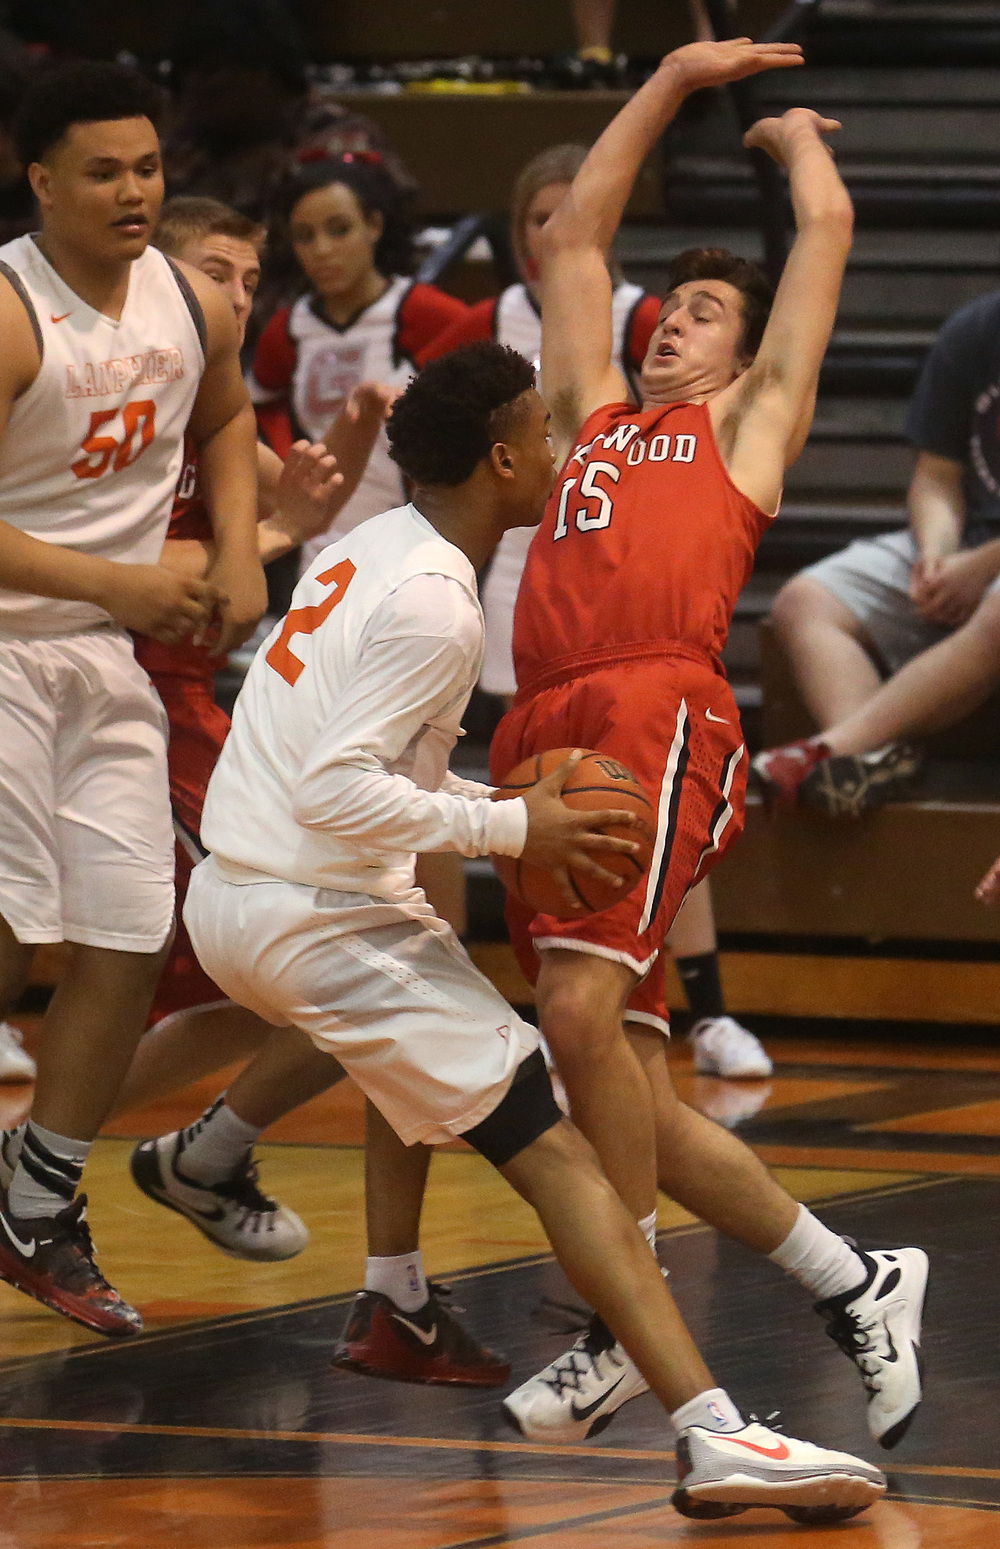 Glenwood's Joel Alexander plays defense while Lanphier's Cardell McGee tries to get around him.  David Spencer/The State Journal Register